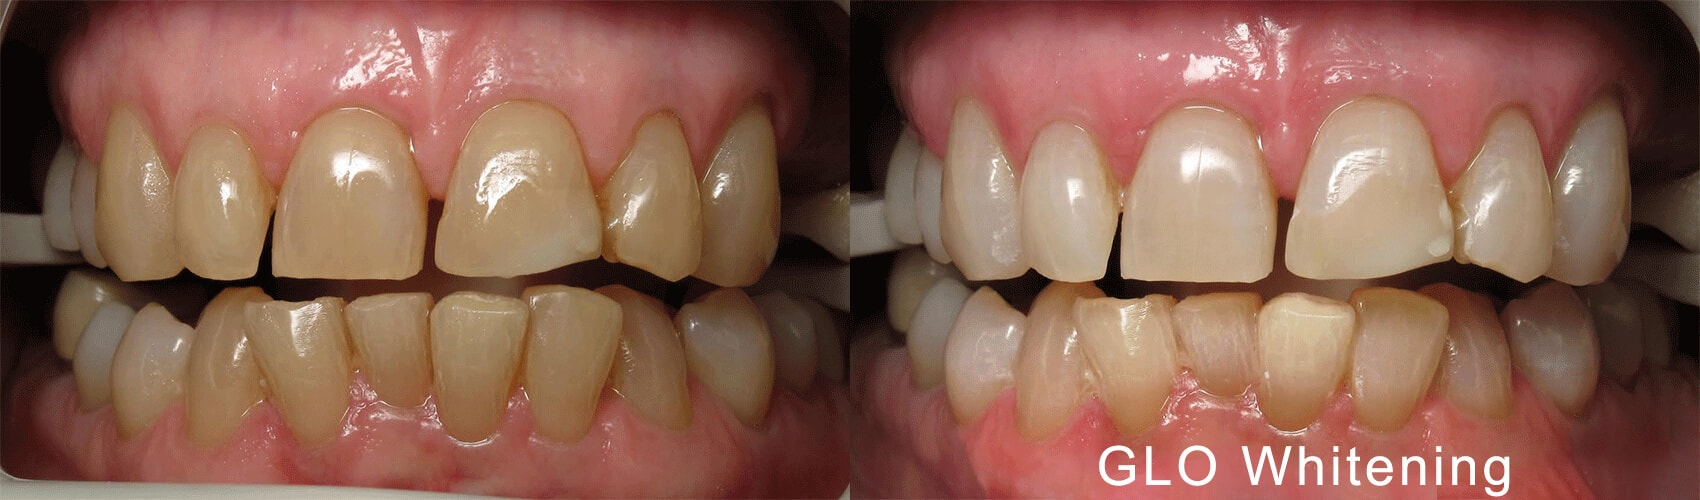 Before and after case using GLO Teeth Whitening